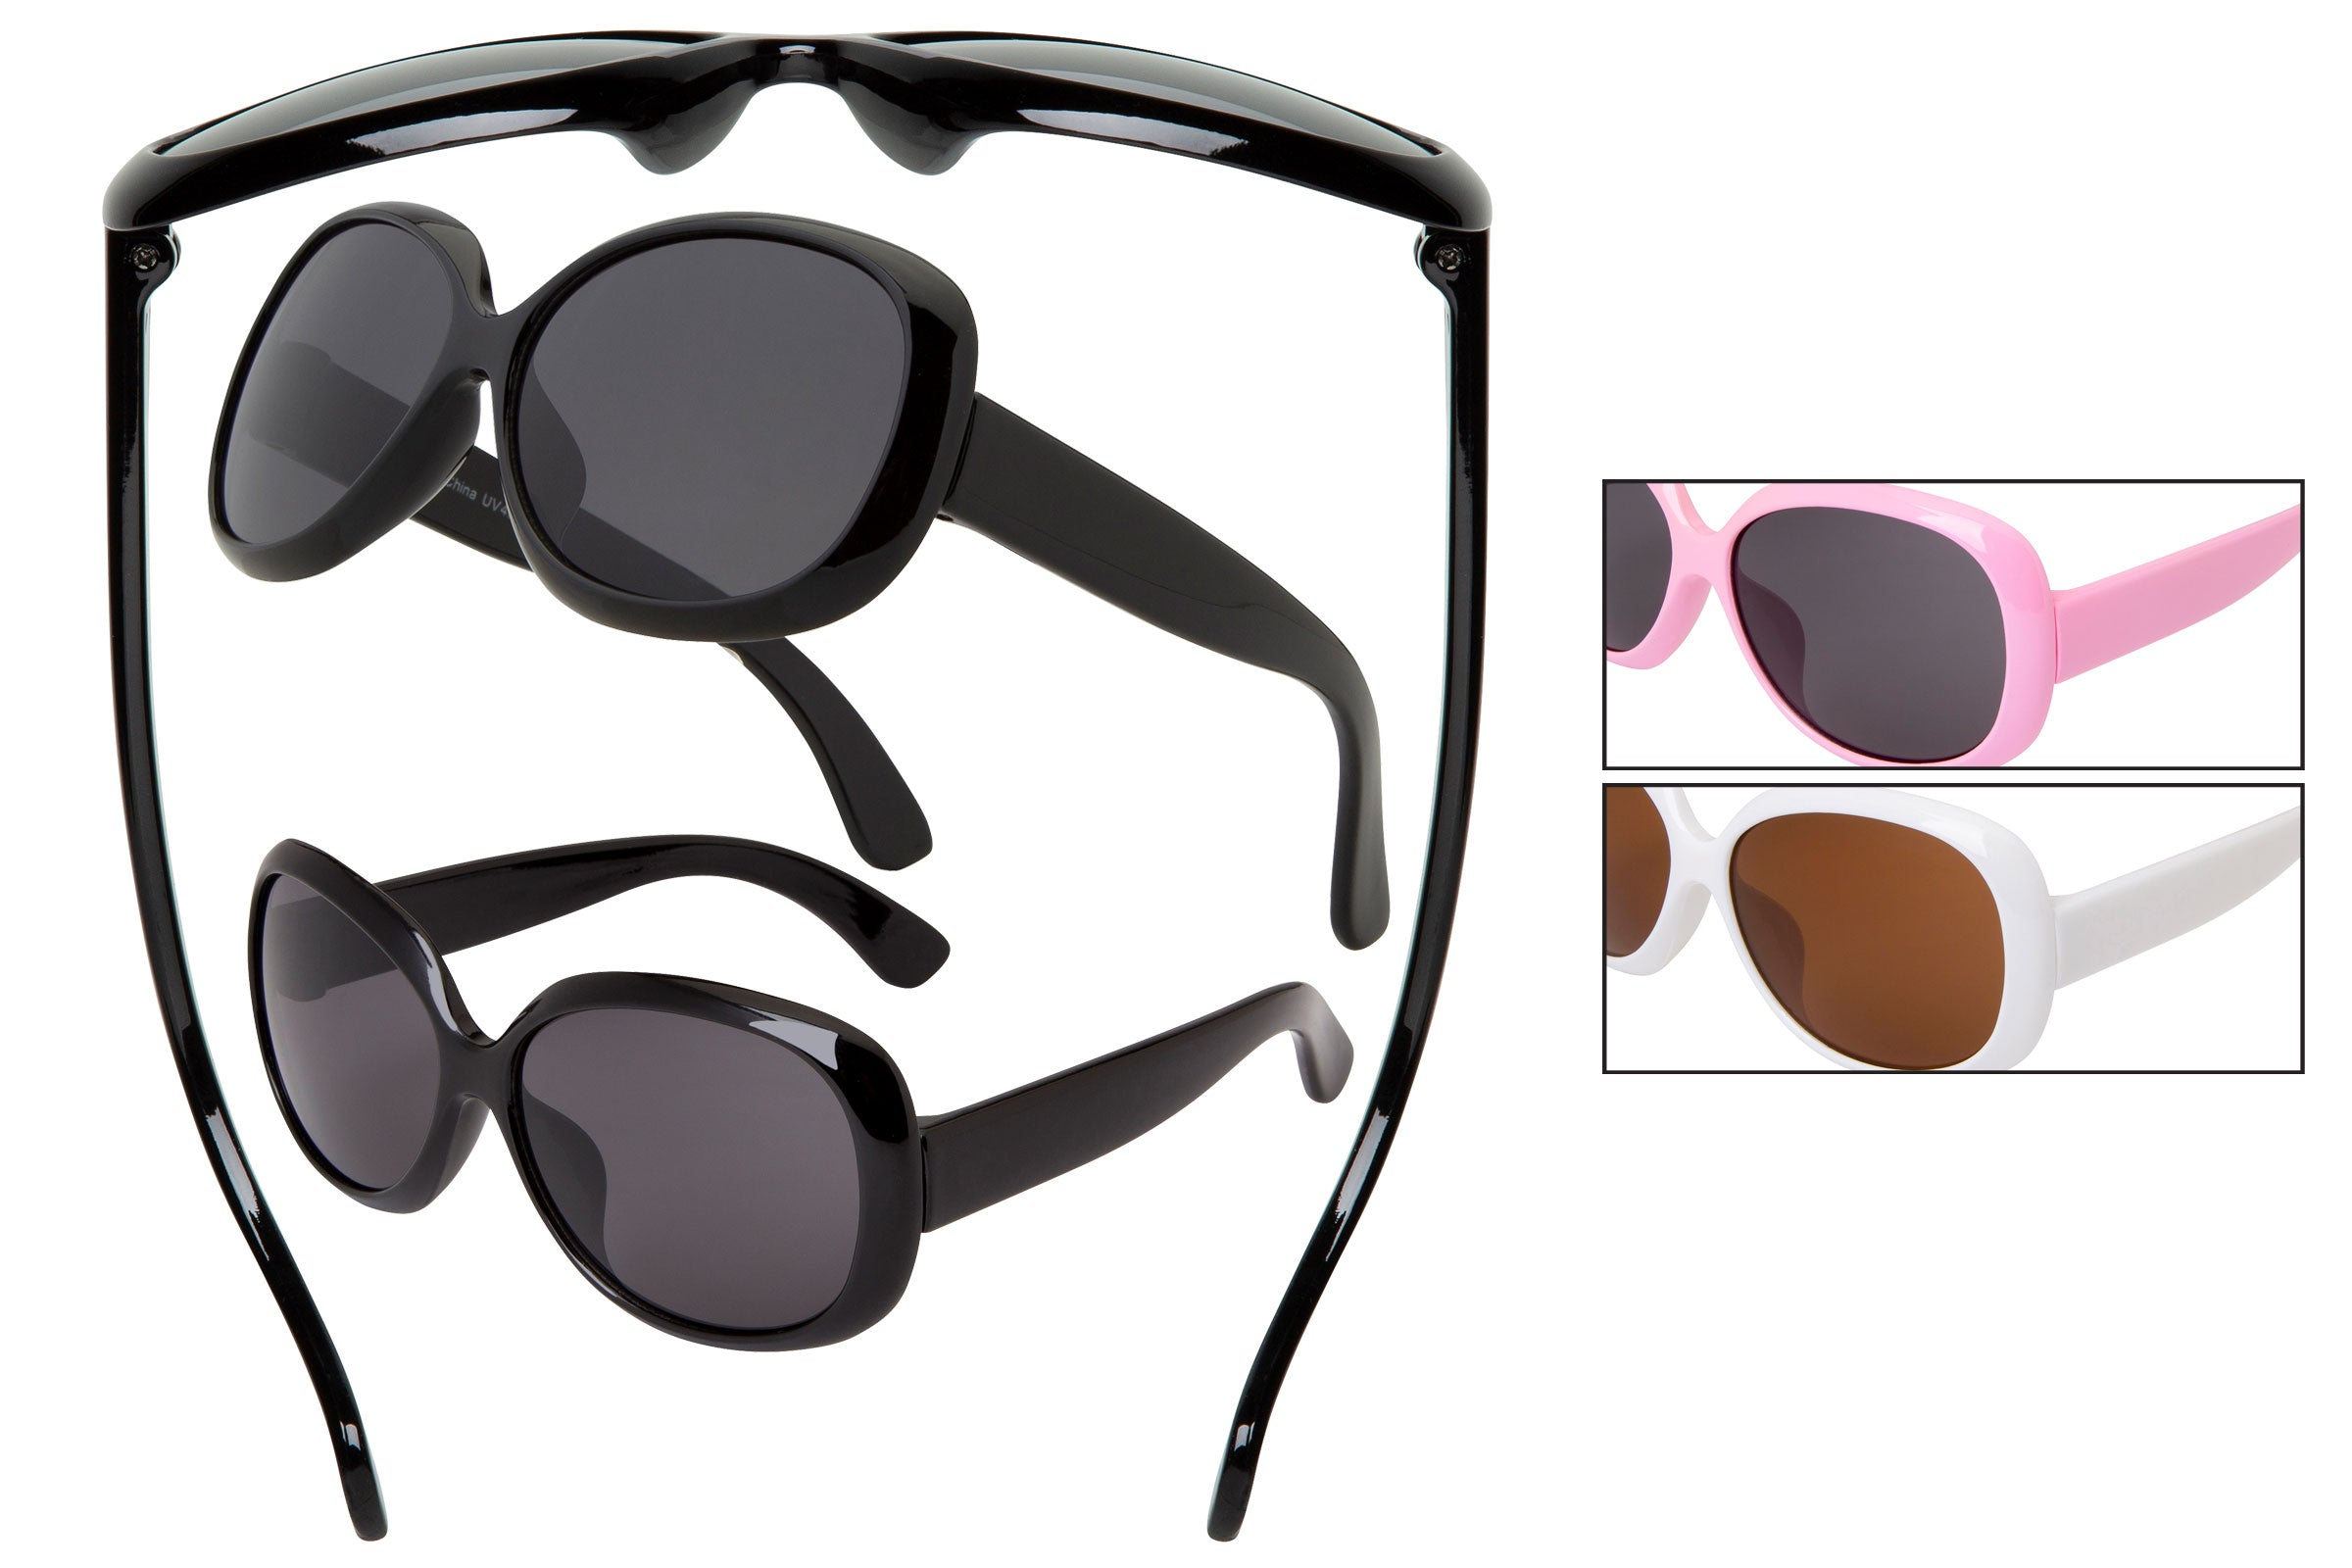 KID68 - Girls Fashion Sunglasses